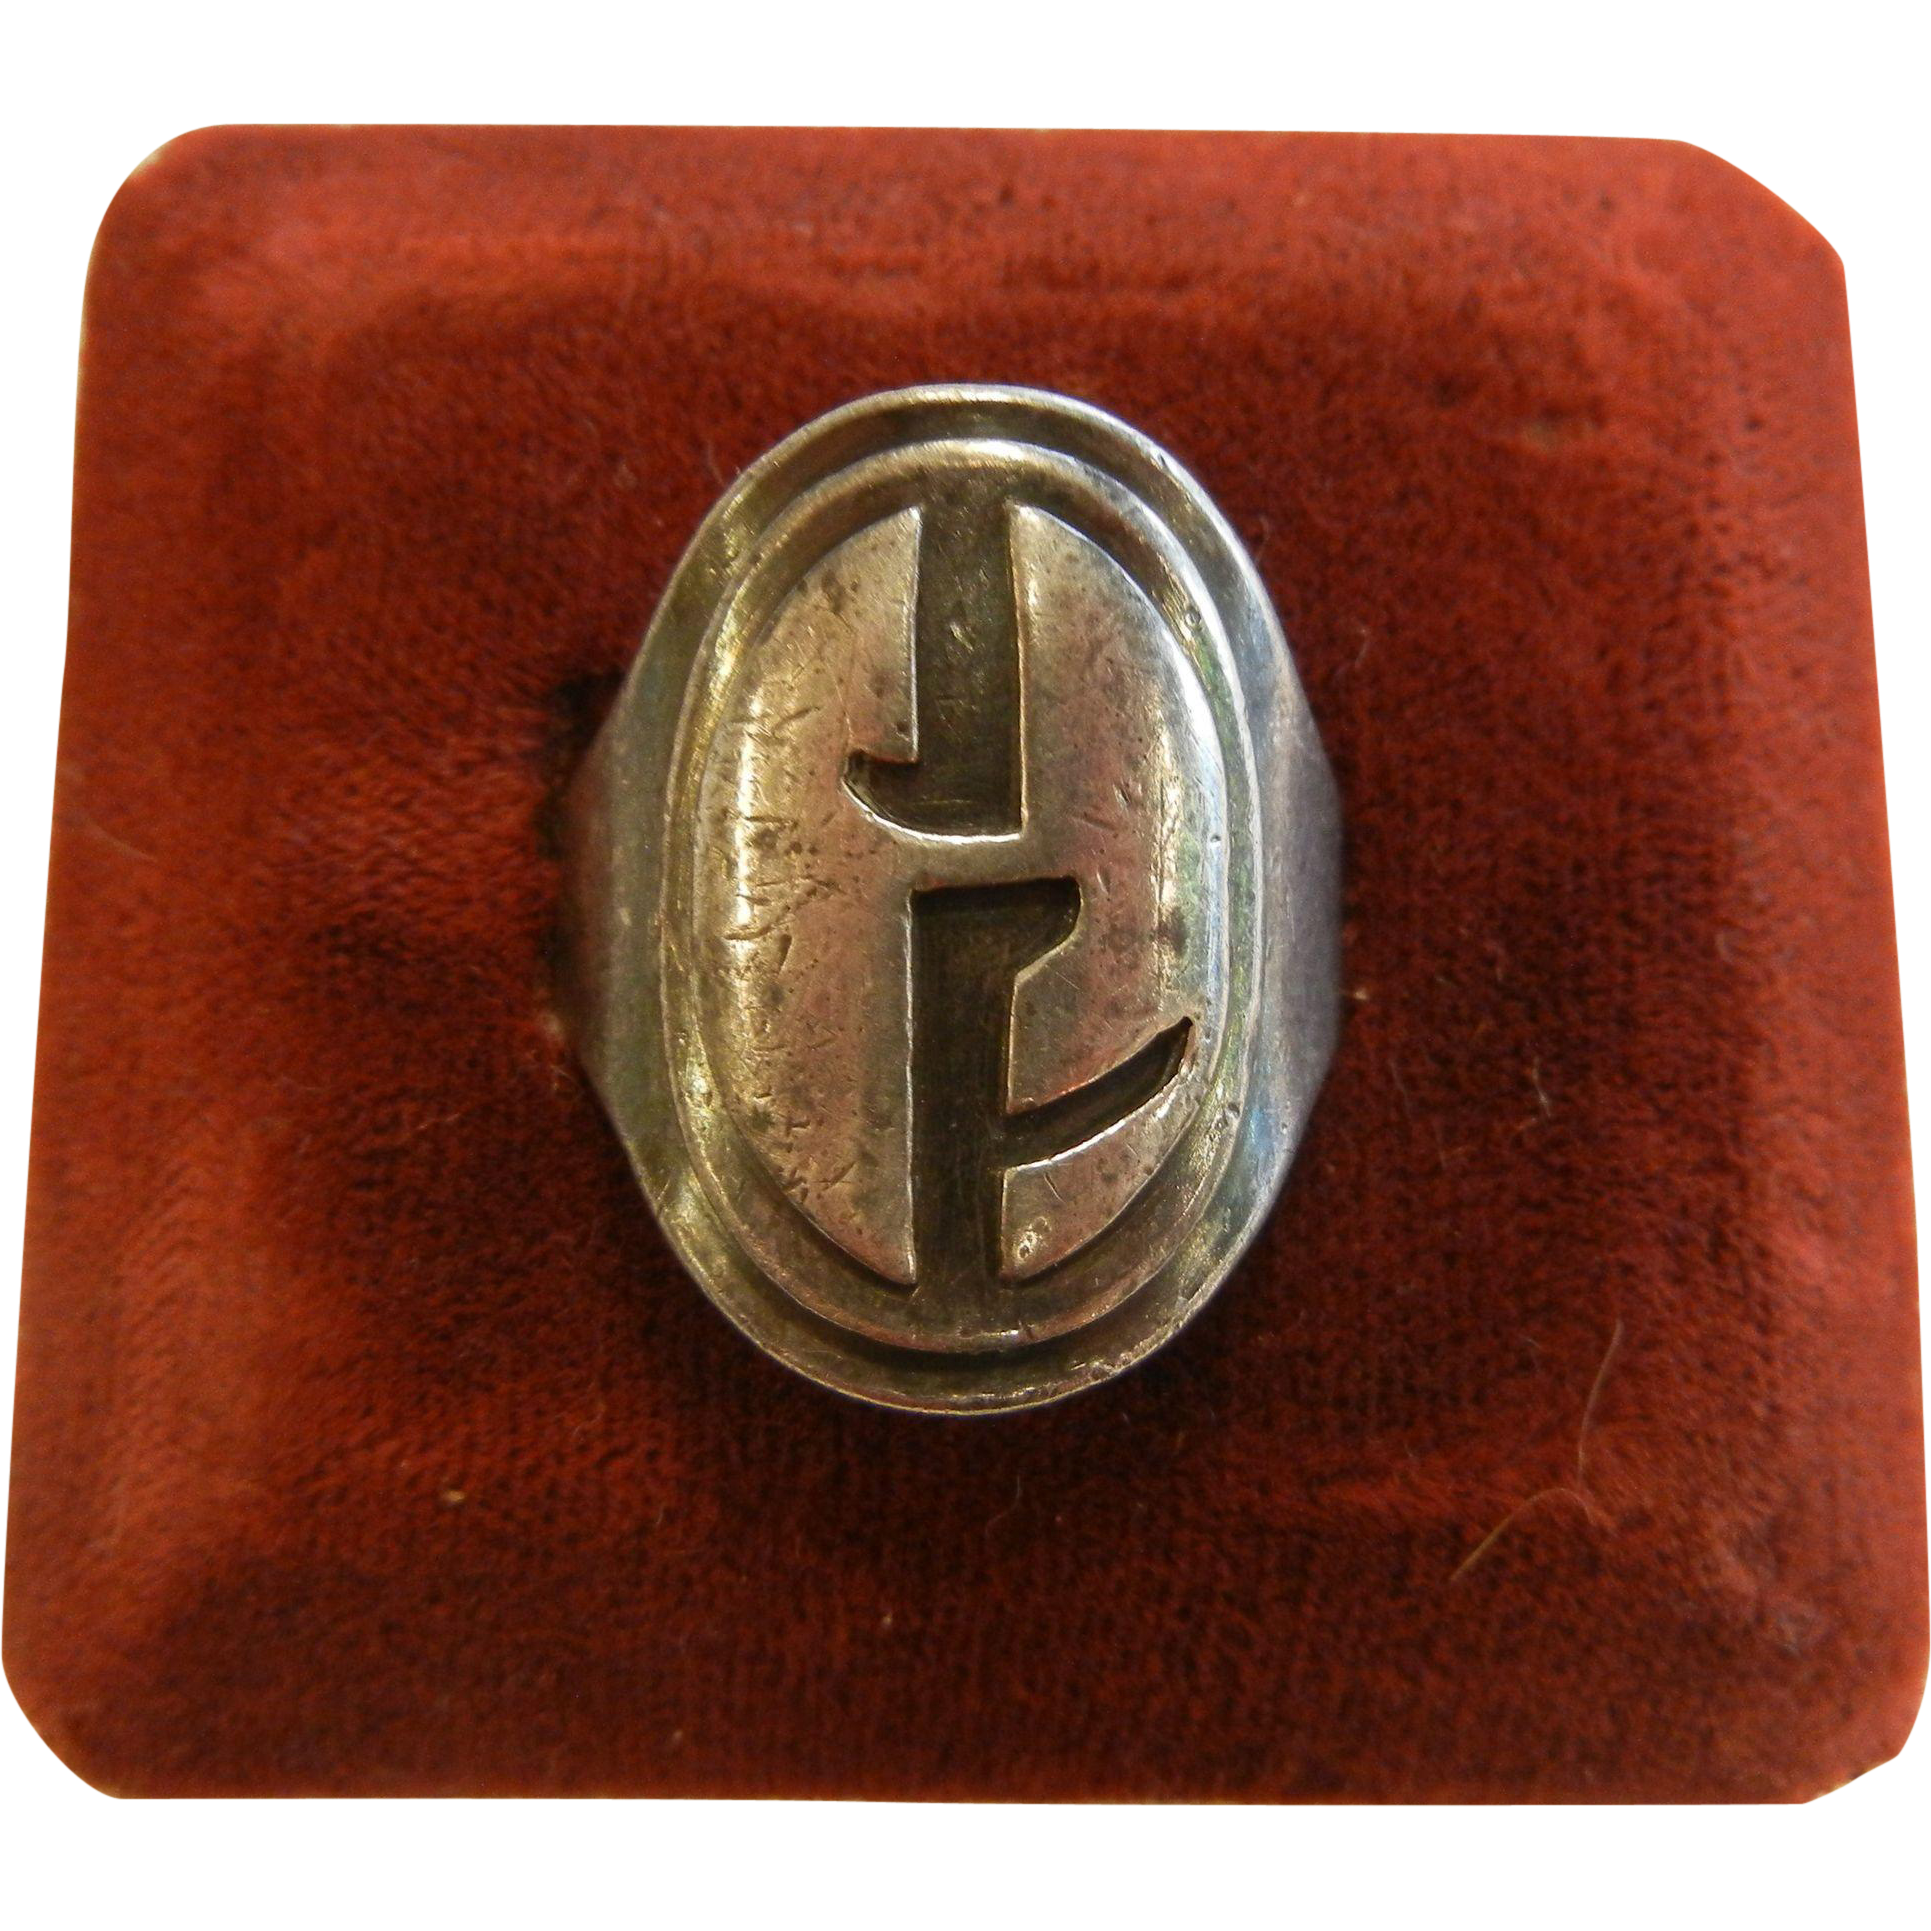 Vintage Sterling Silver Ring w/ Modernist Initials JF